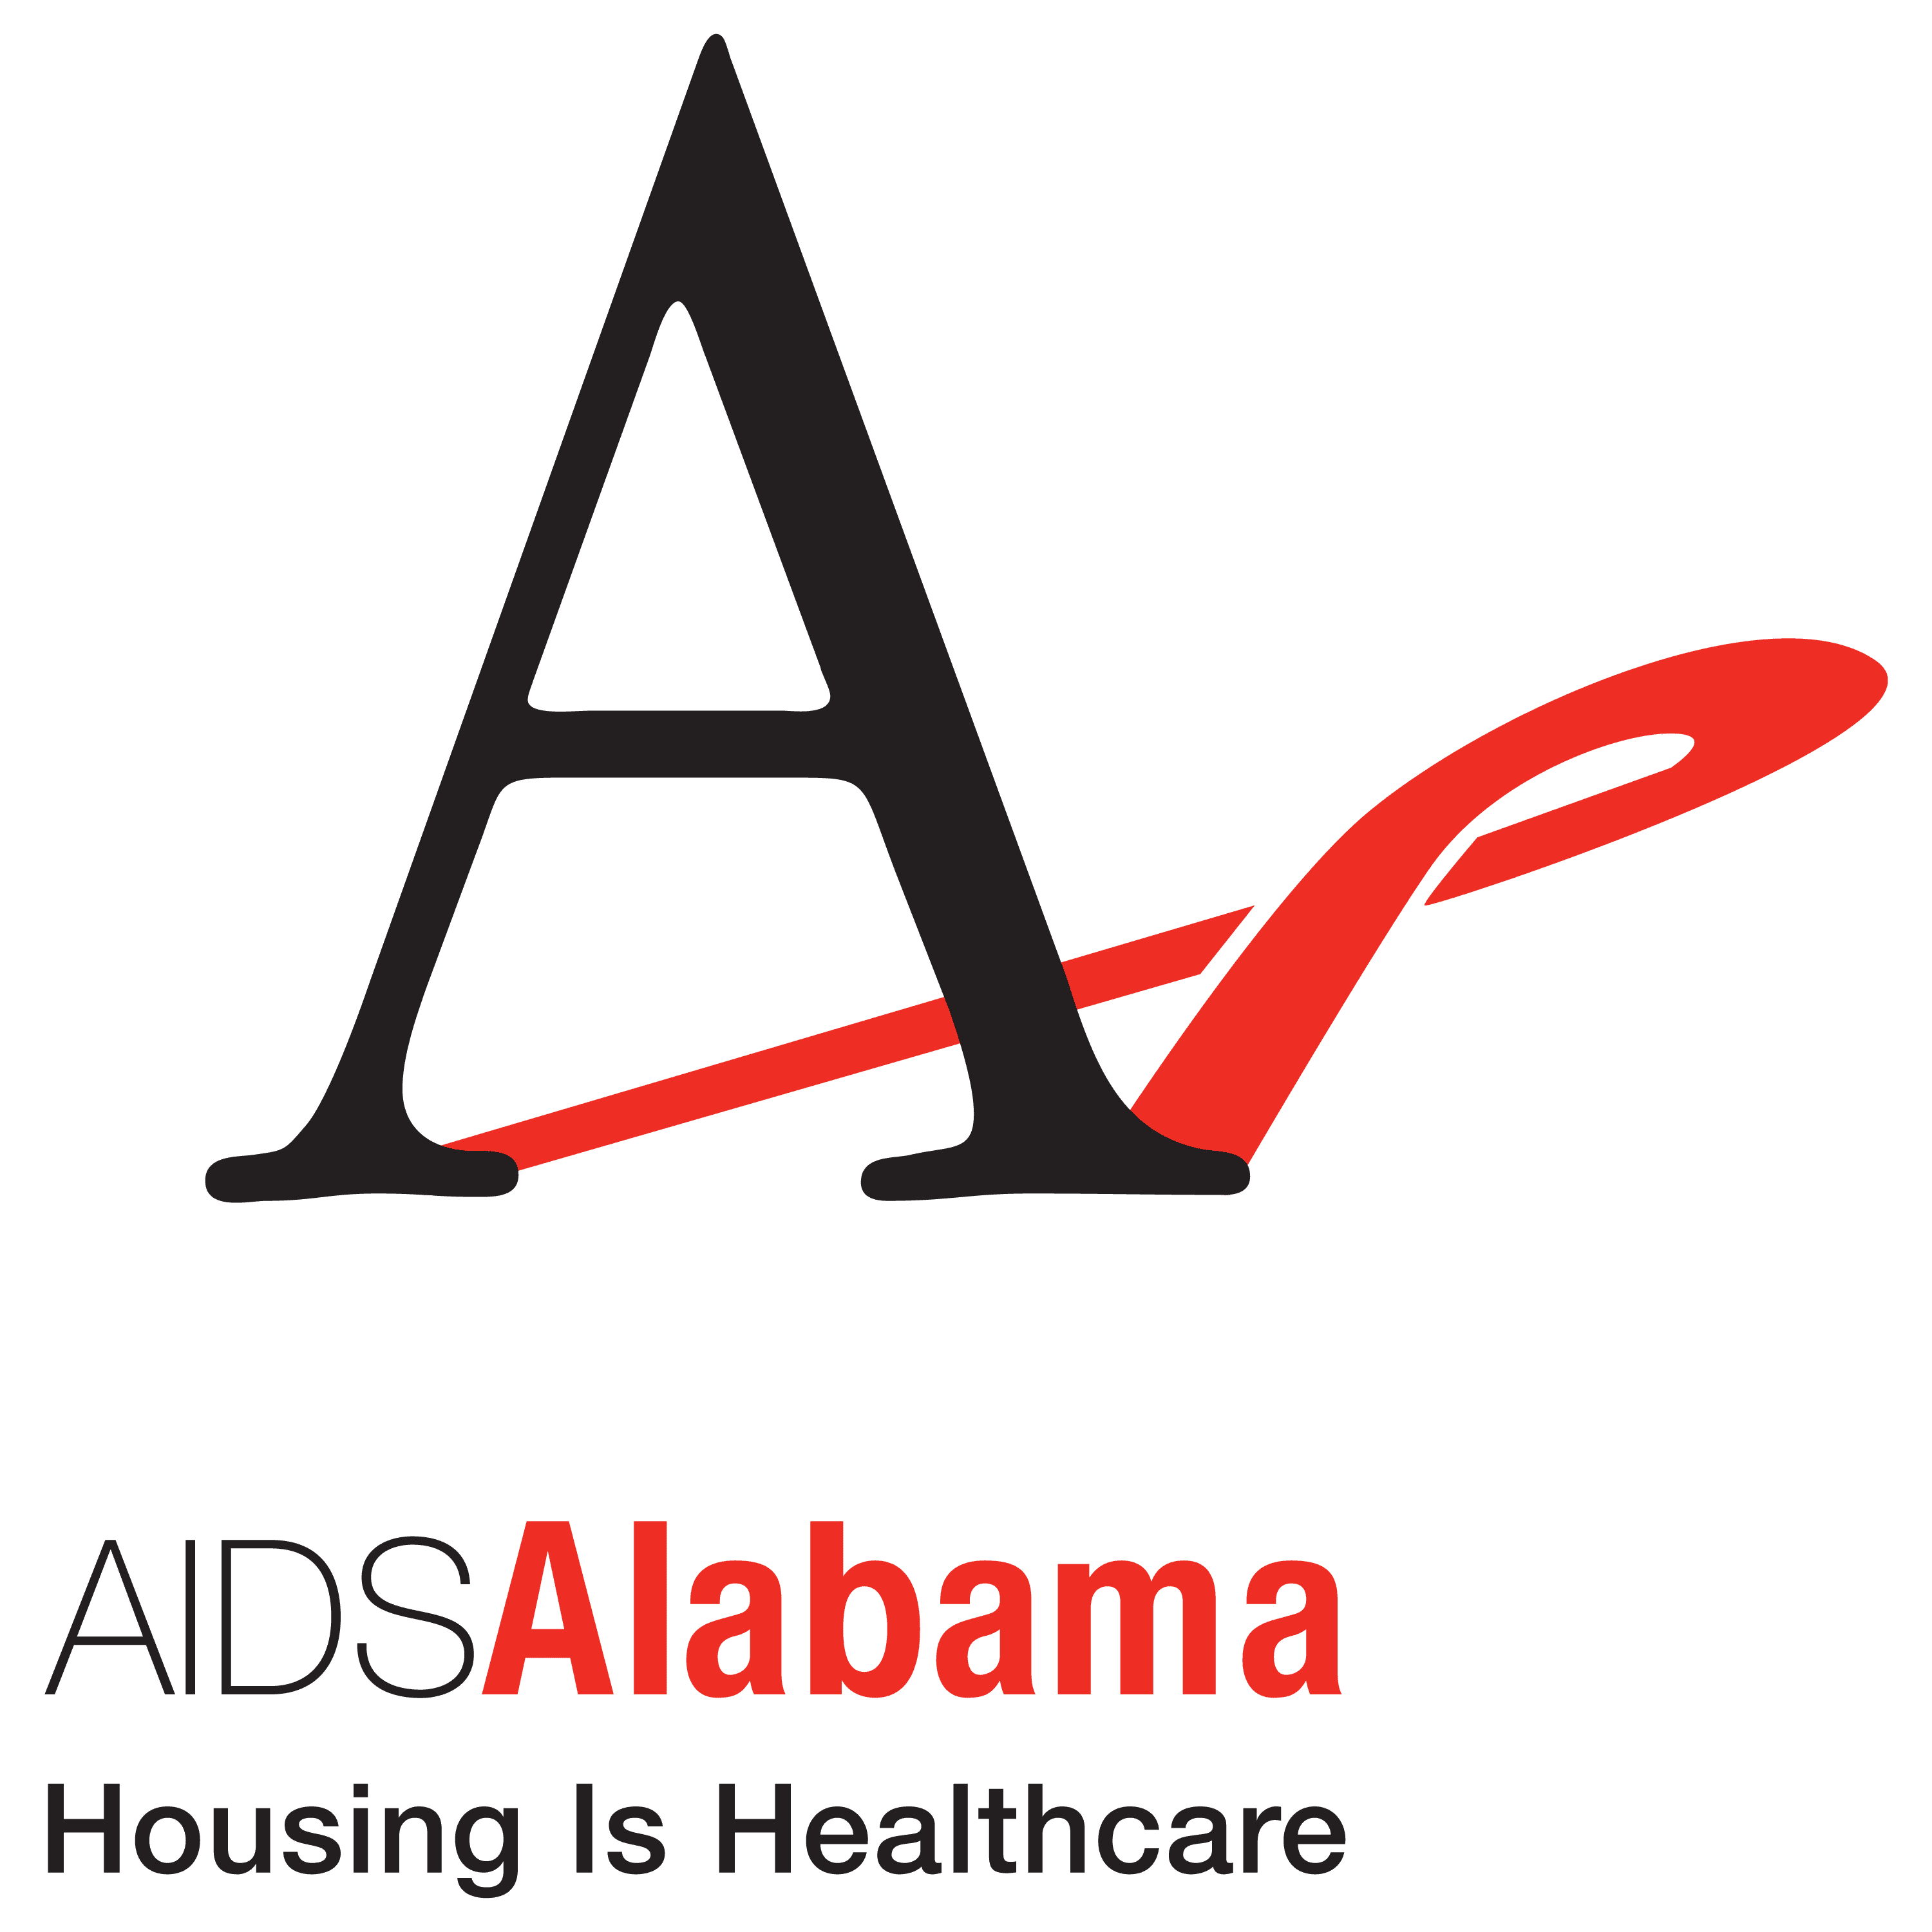 Aids Alabama - Jefferson